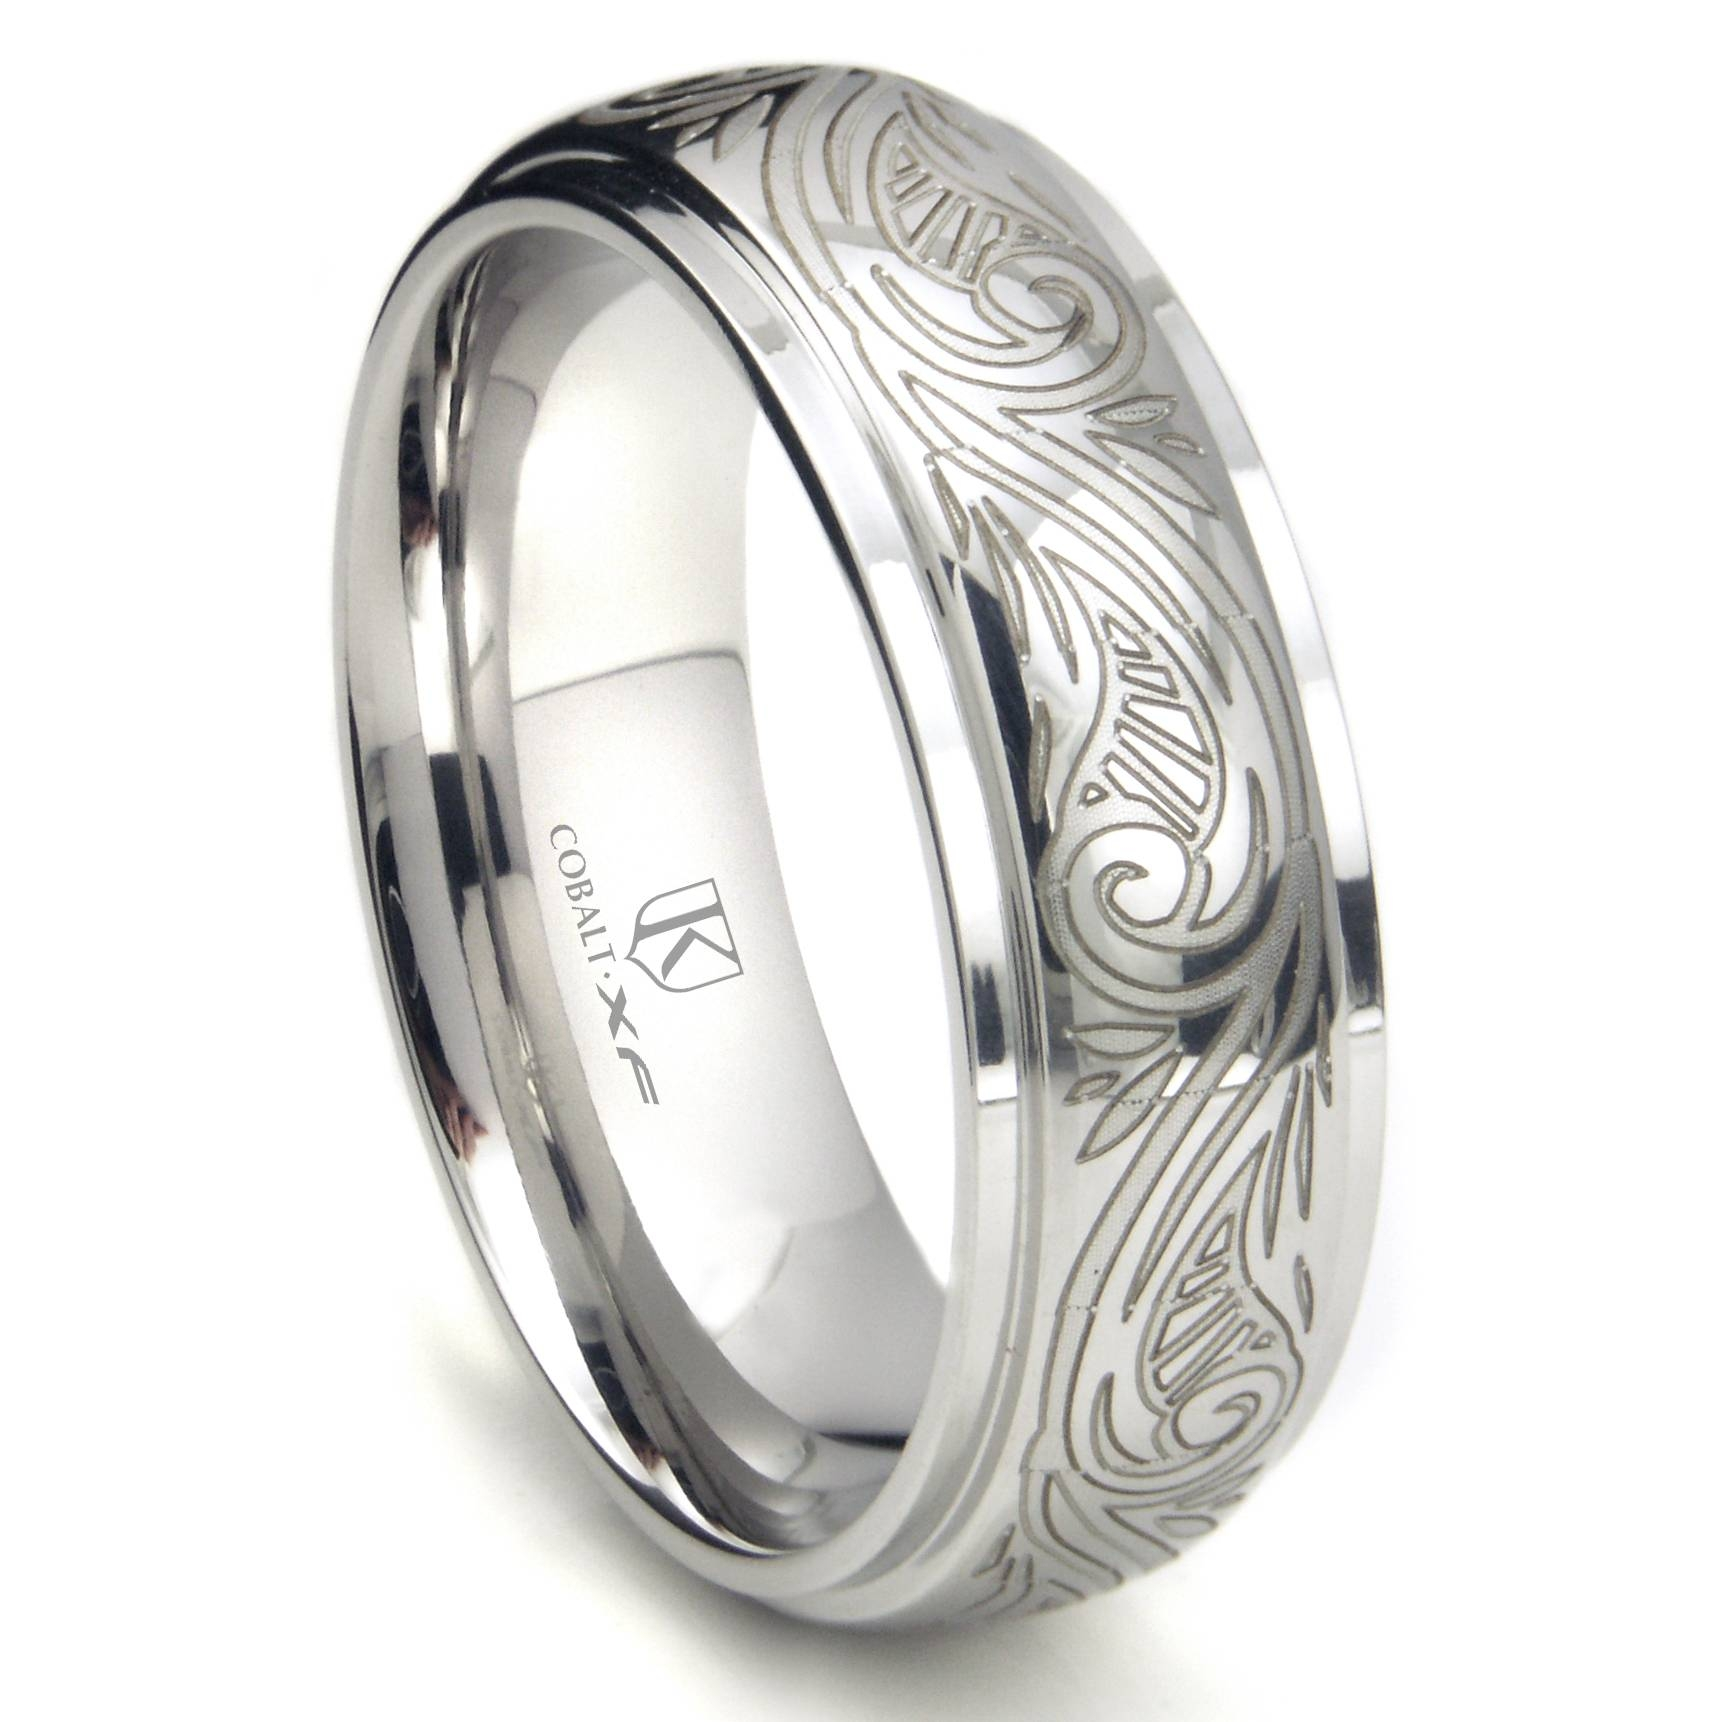 Cobalt Xf Chrome 8Mm Laser Engraved Paisley Motif Dome Wedding With Regard To Mens Wedding Bands With Engraving (View 2 of 15)